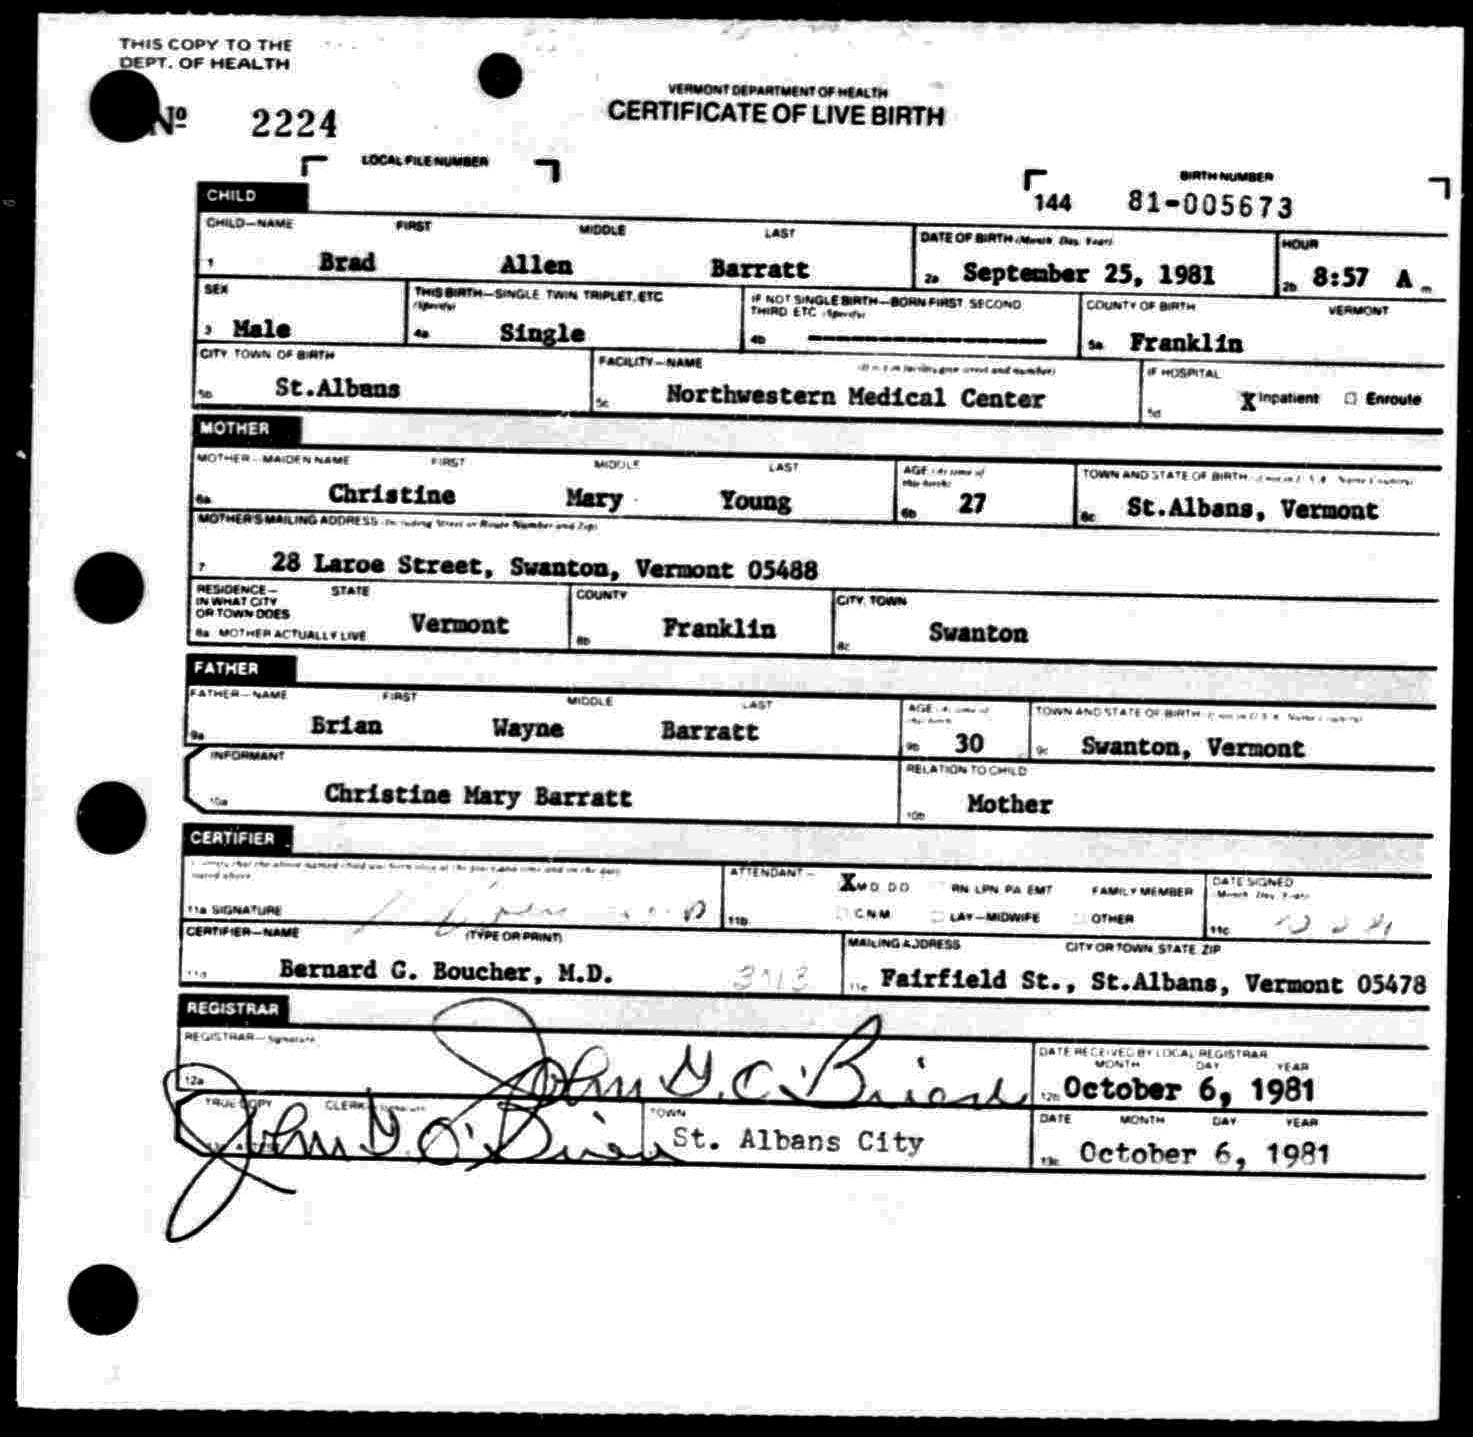 The reinvention of the alleged vermont and new hampshire abenakis birth certificate for brad allen barratt 1betcityfo Choice Image